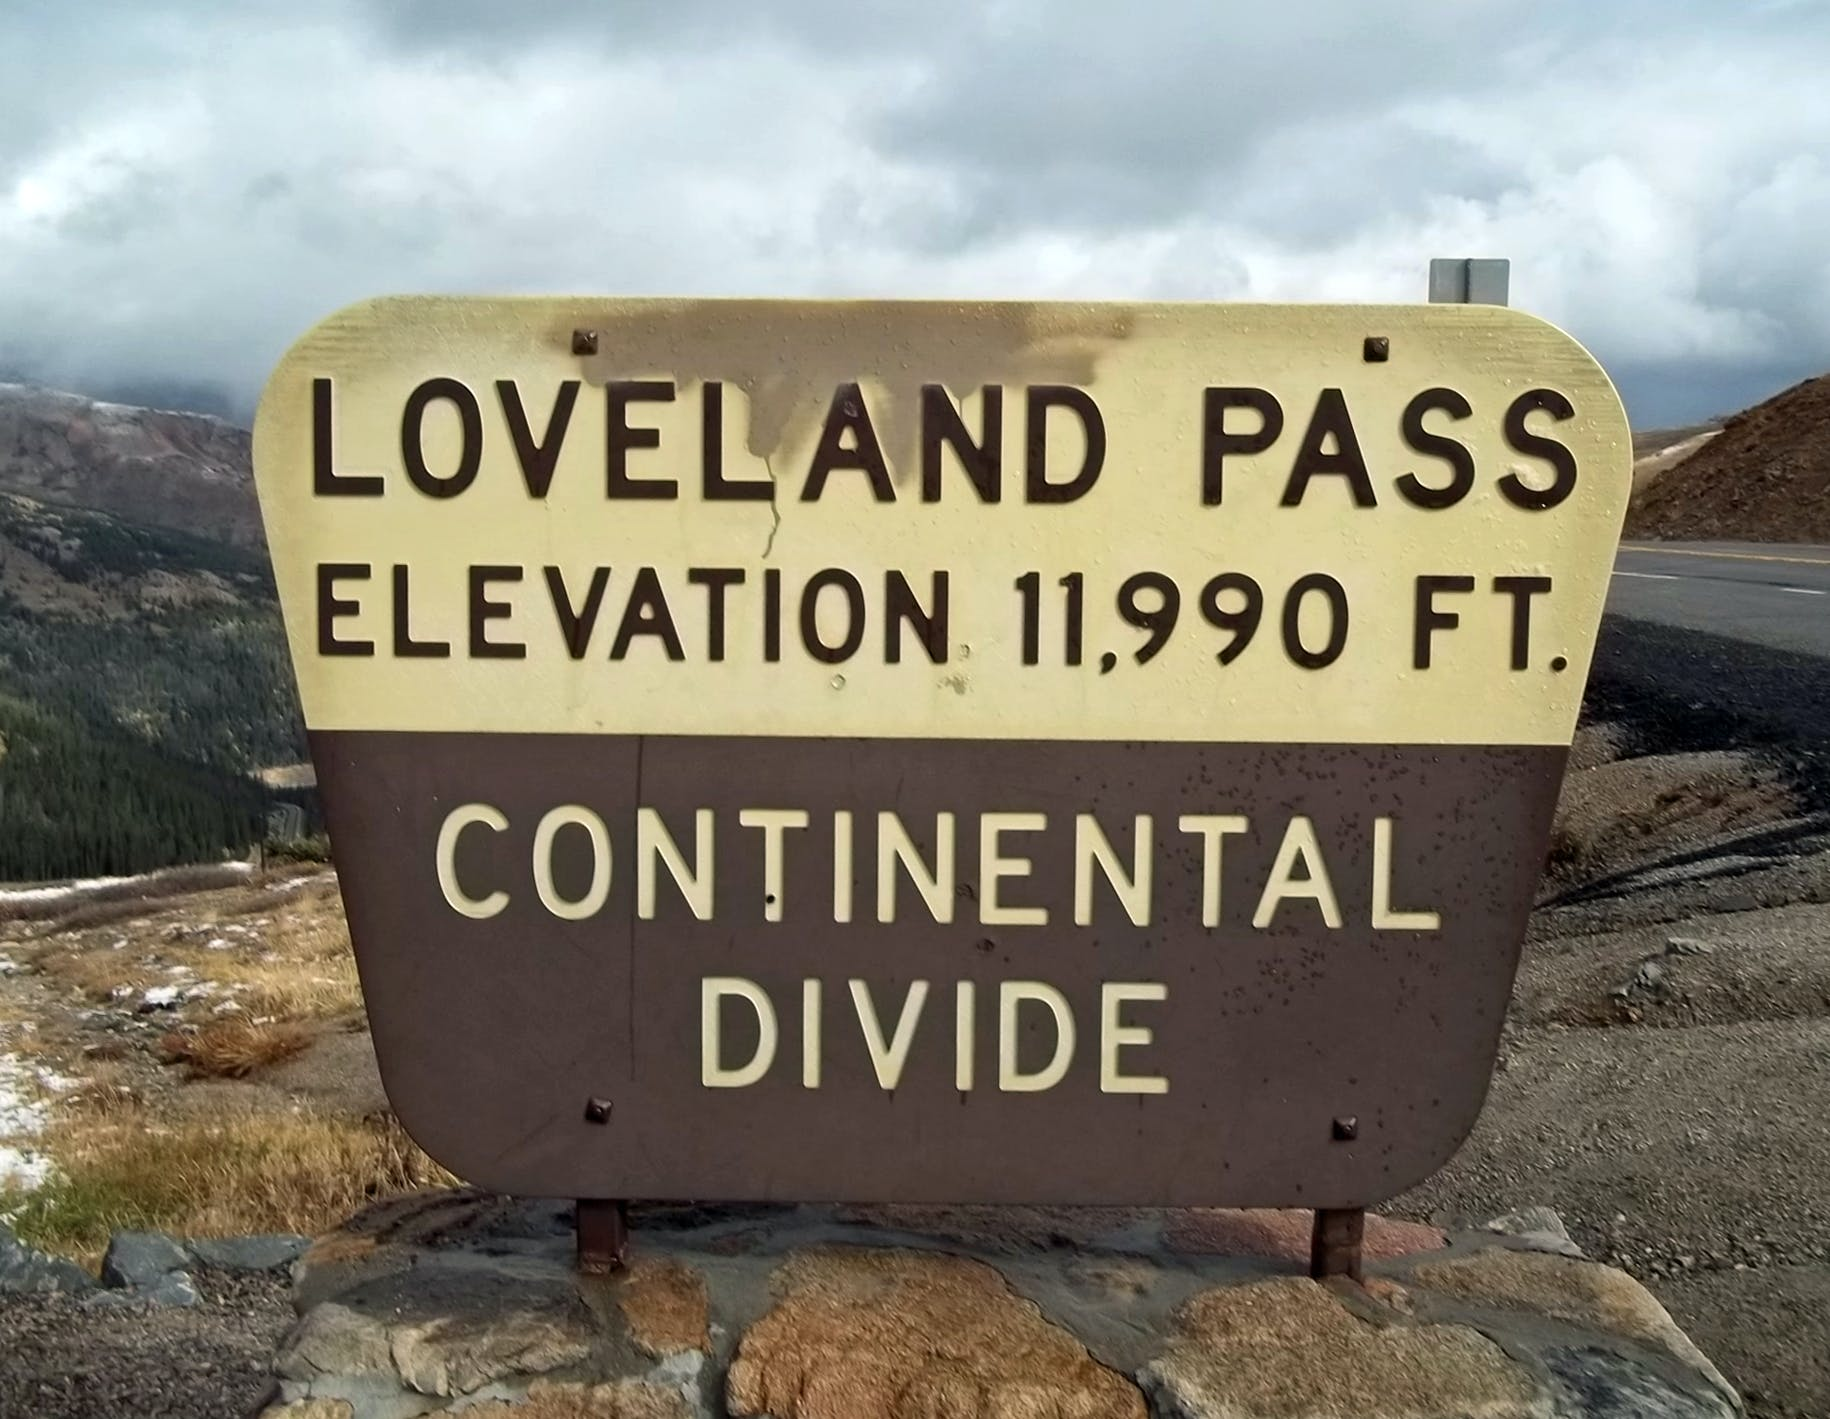 Free stock photo of sign for loveland pass